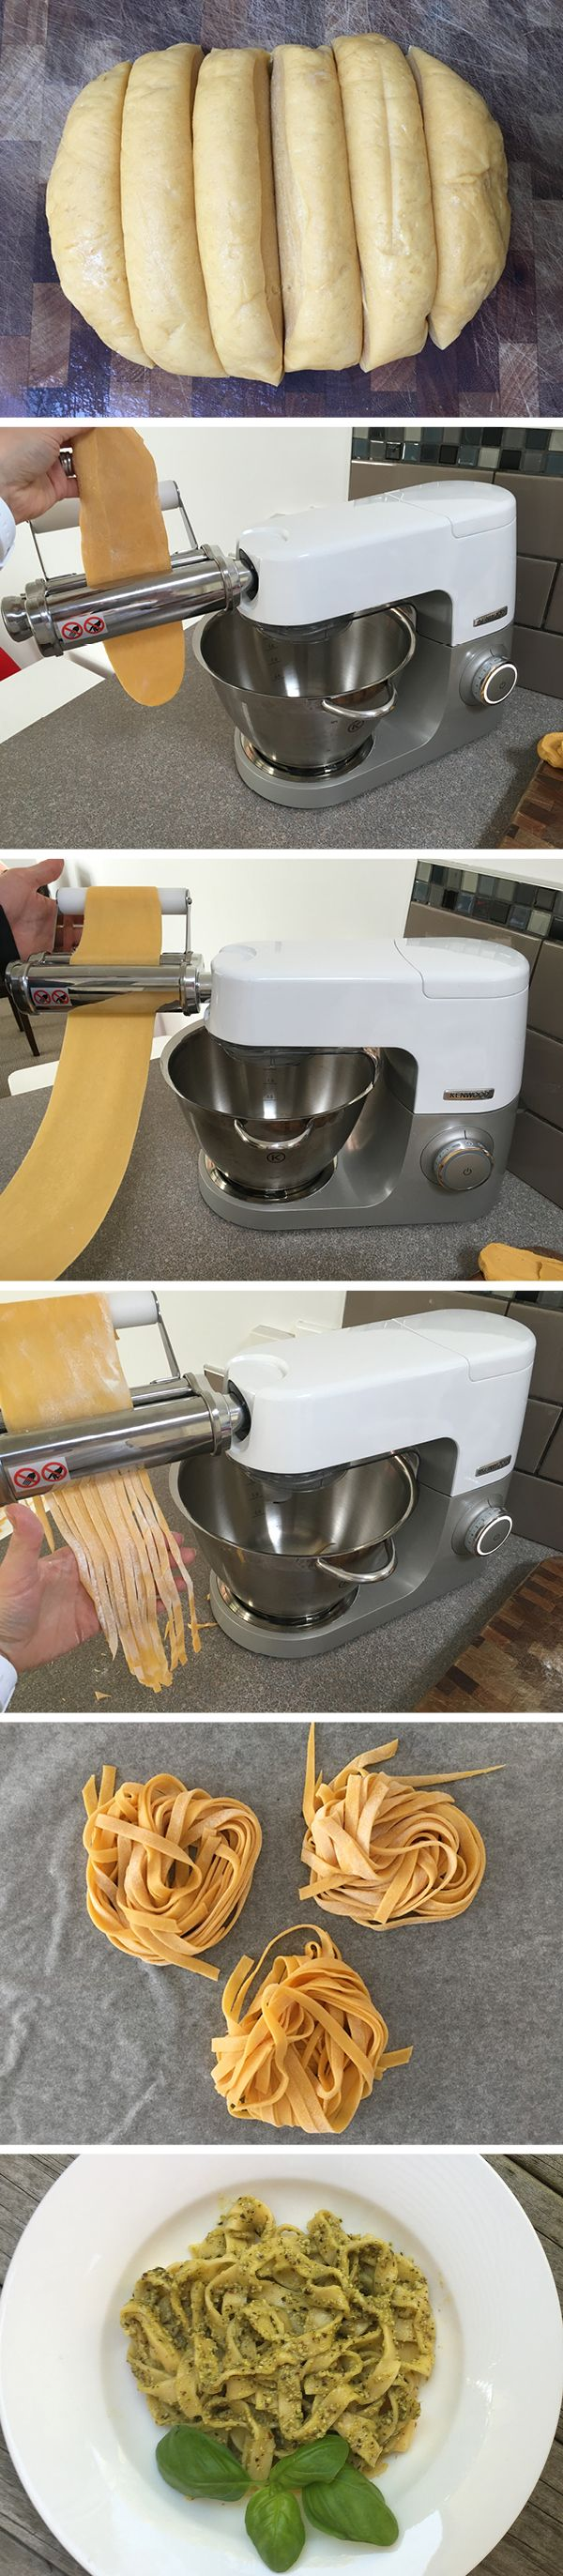 Basic Pasta for the Kenwood Pasta Maker Attachment